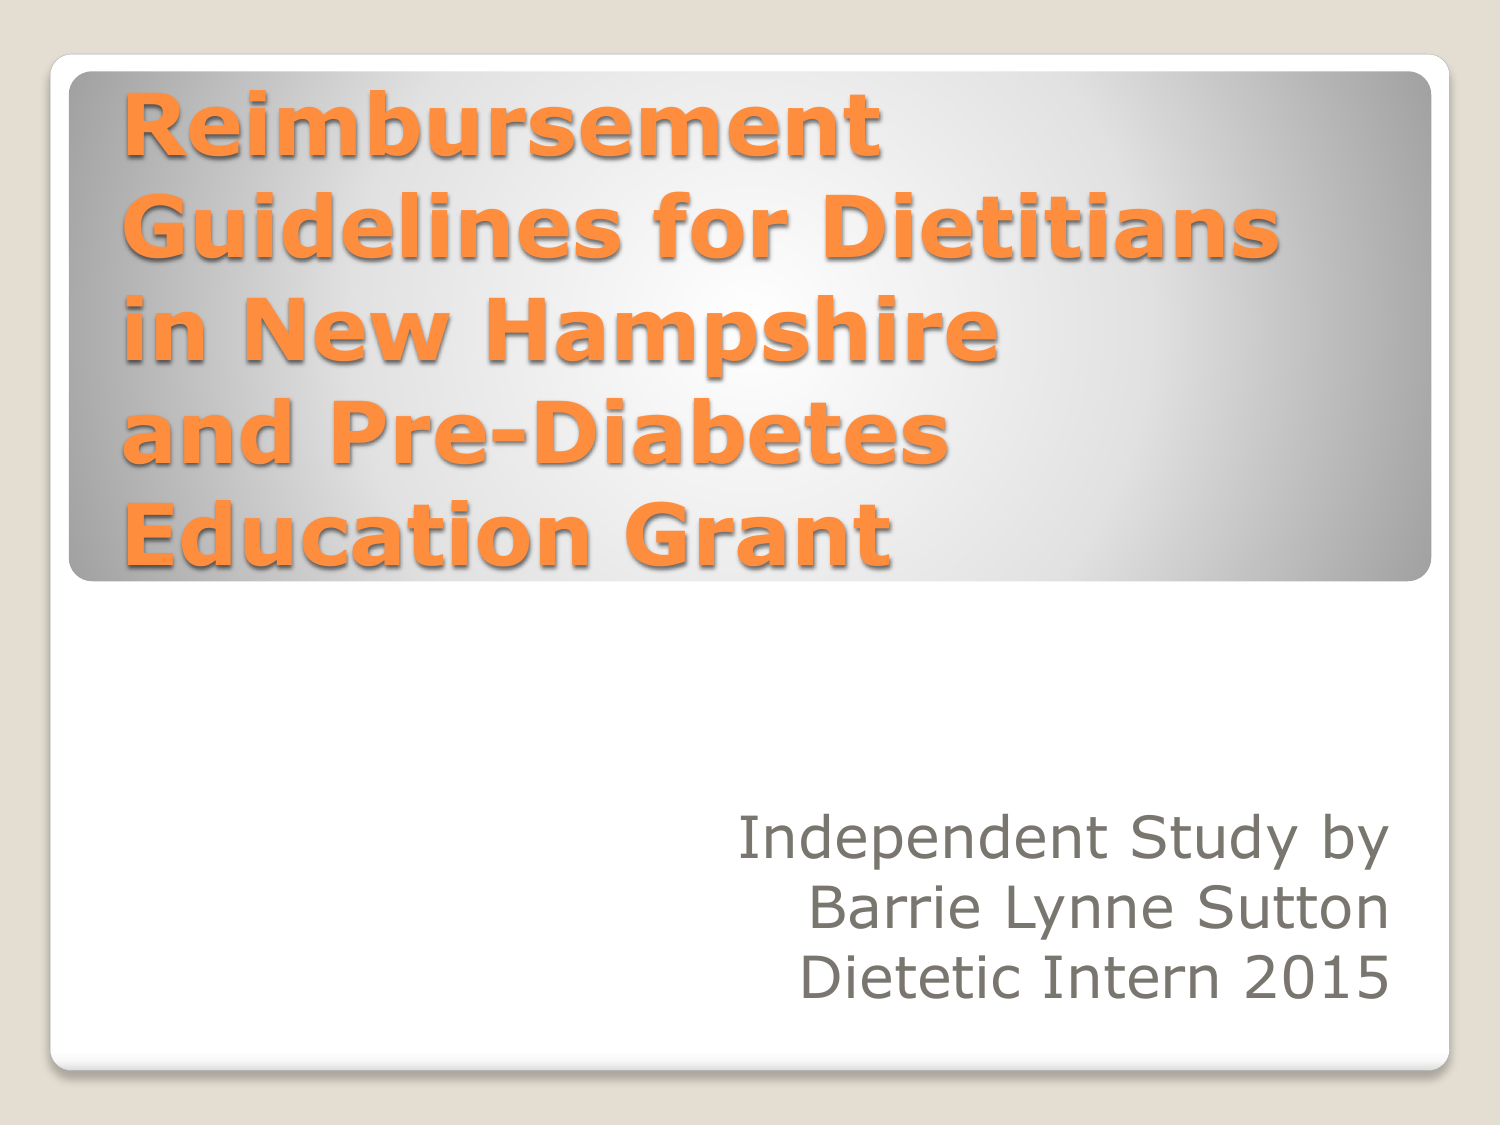 Reimbursement Guidelines for Dietitians in New Hampshire and